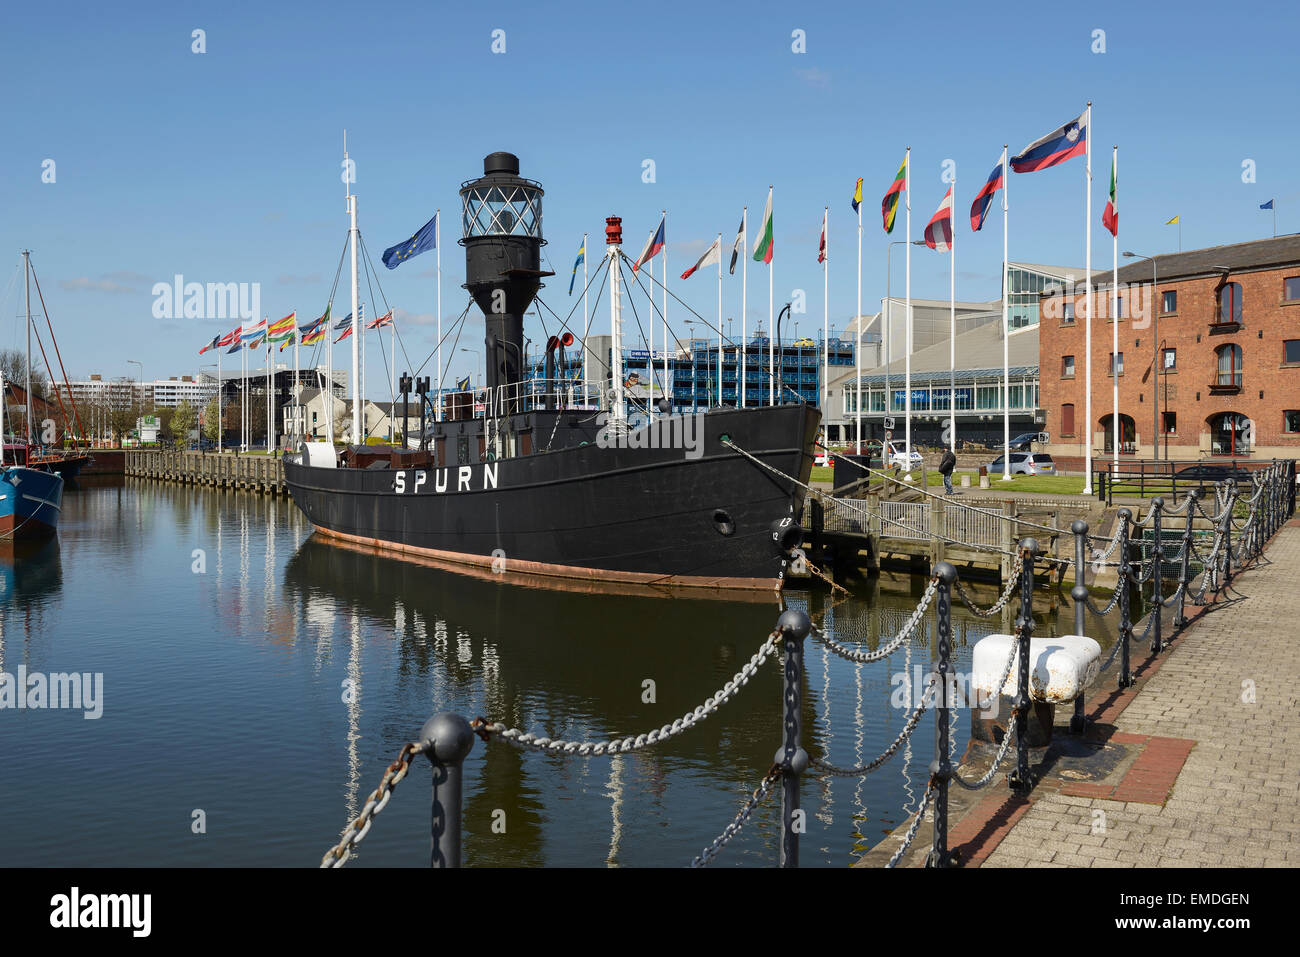 The Spurn Lightship in Hull Marina UK - Stock Image